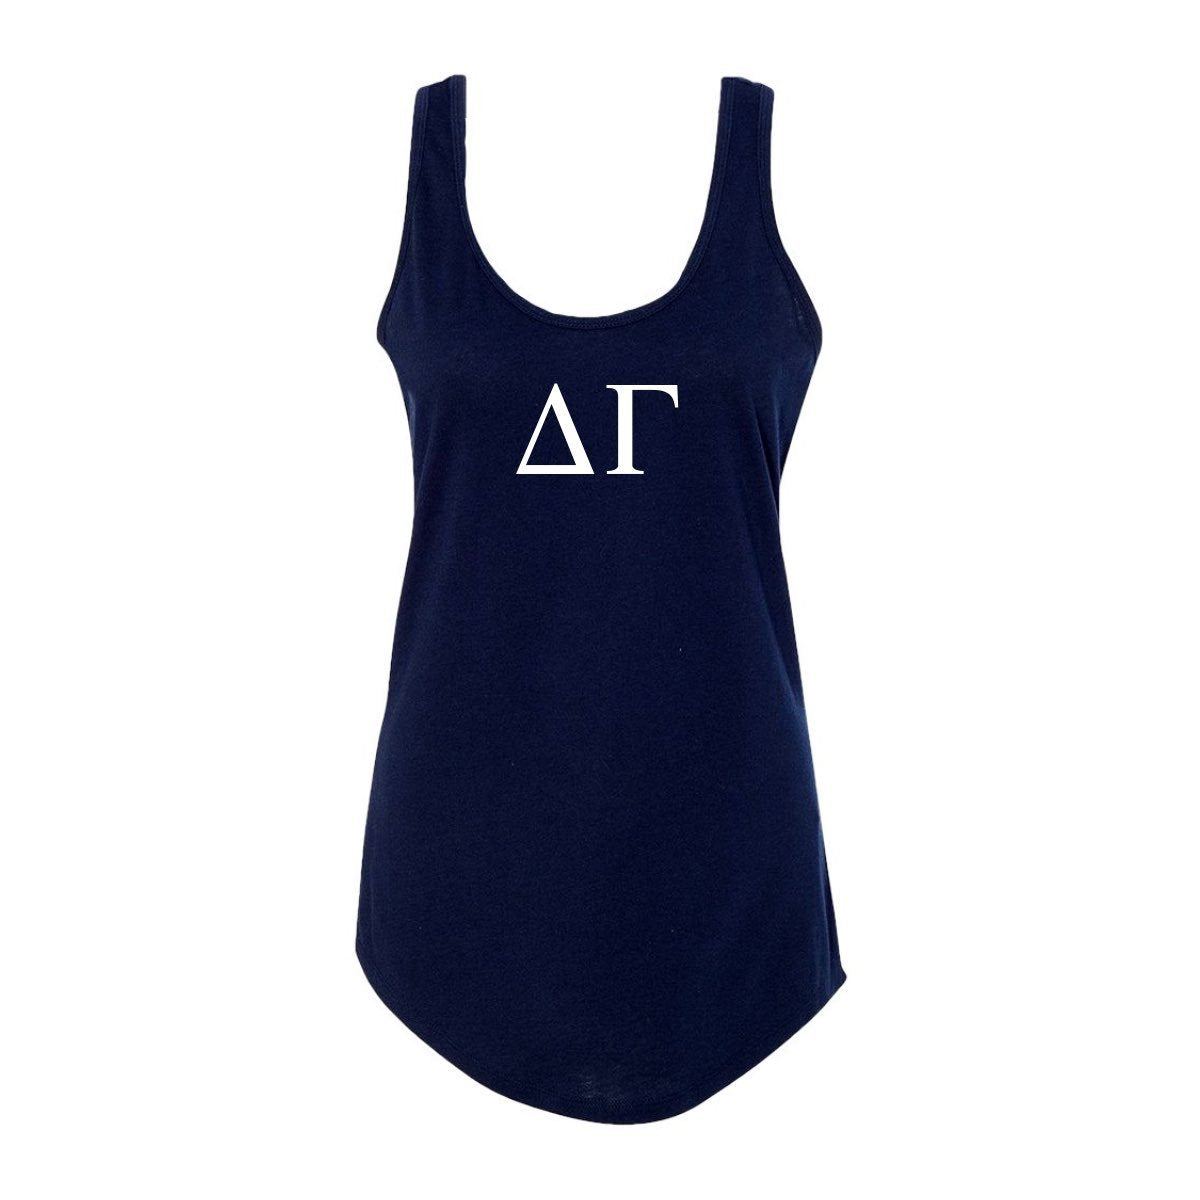 Navy Blue Delta Gamma Tank top with Large Greek Letters on front. Perfect sorority tank top for swimsuit coverup or oversized nightshirt.